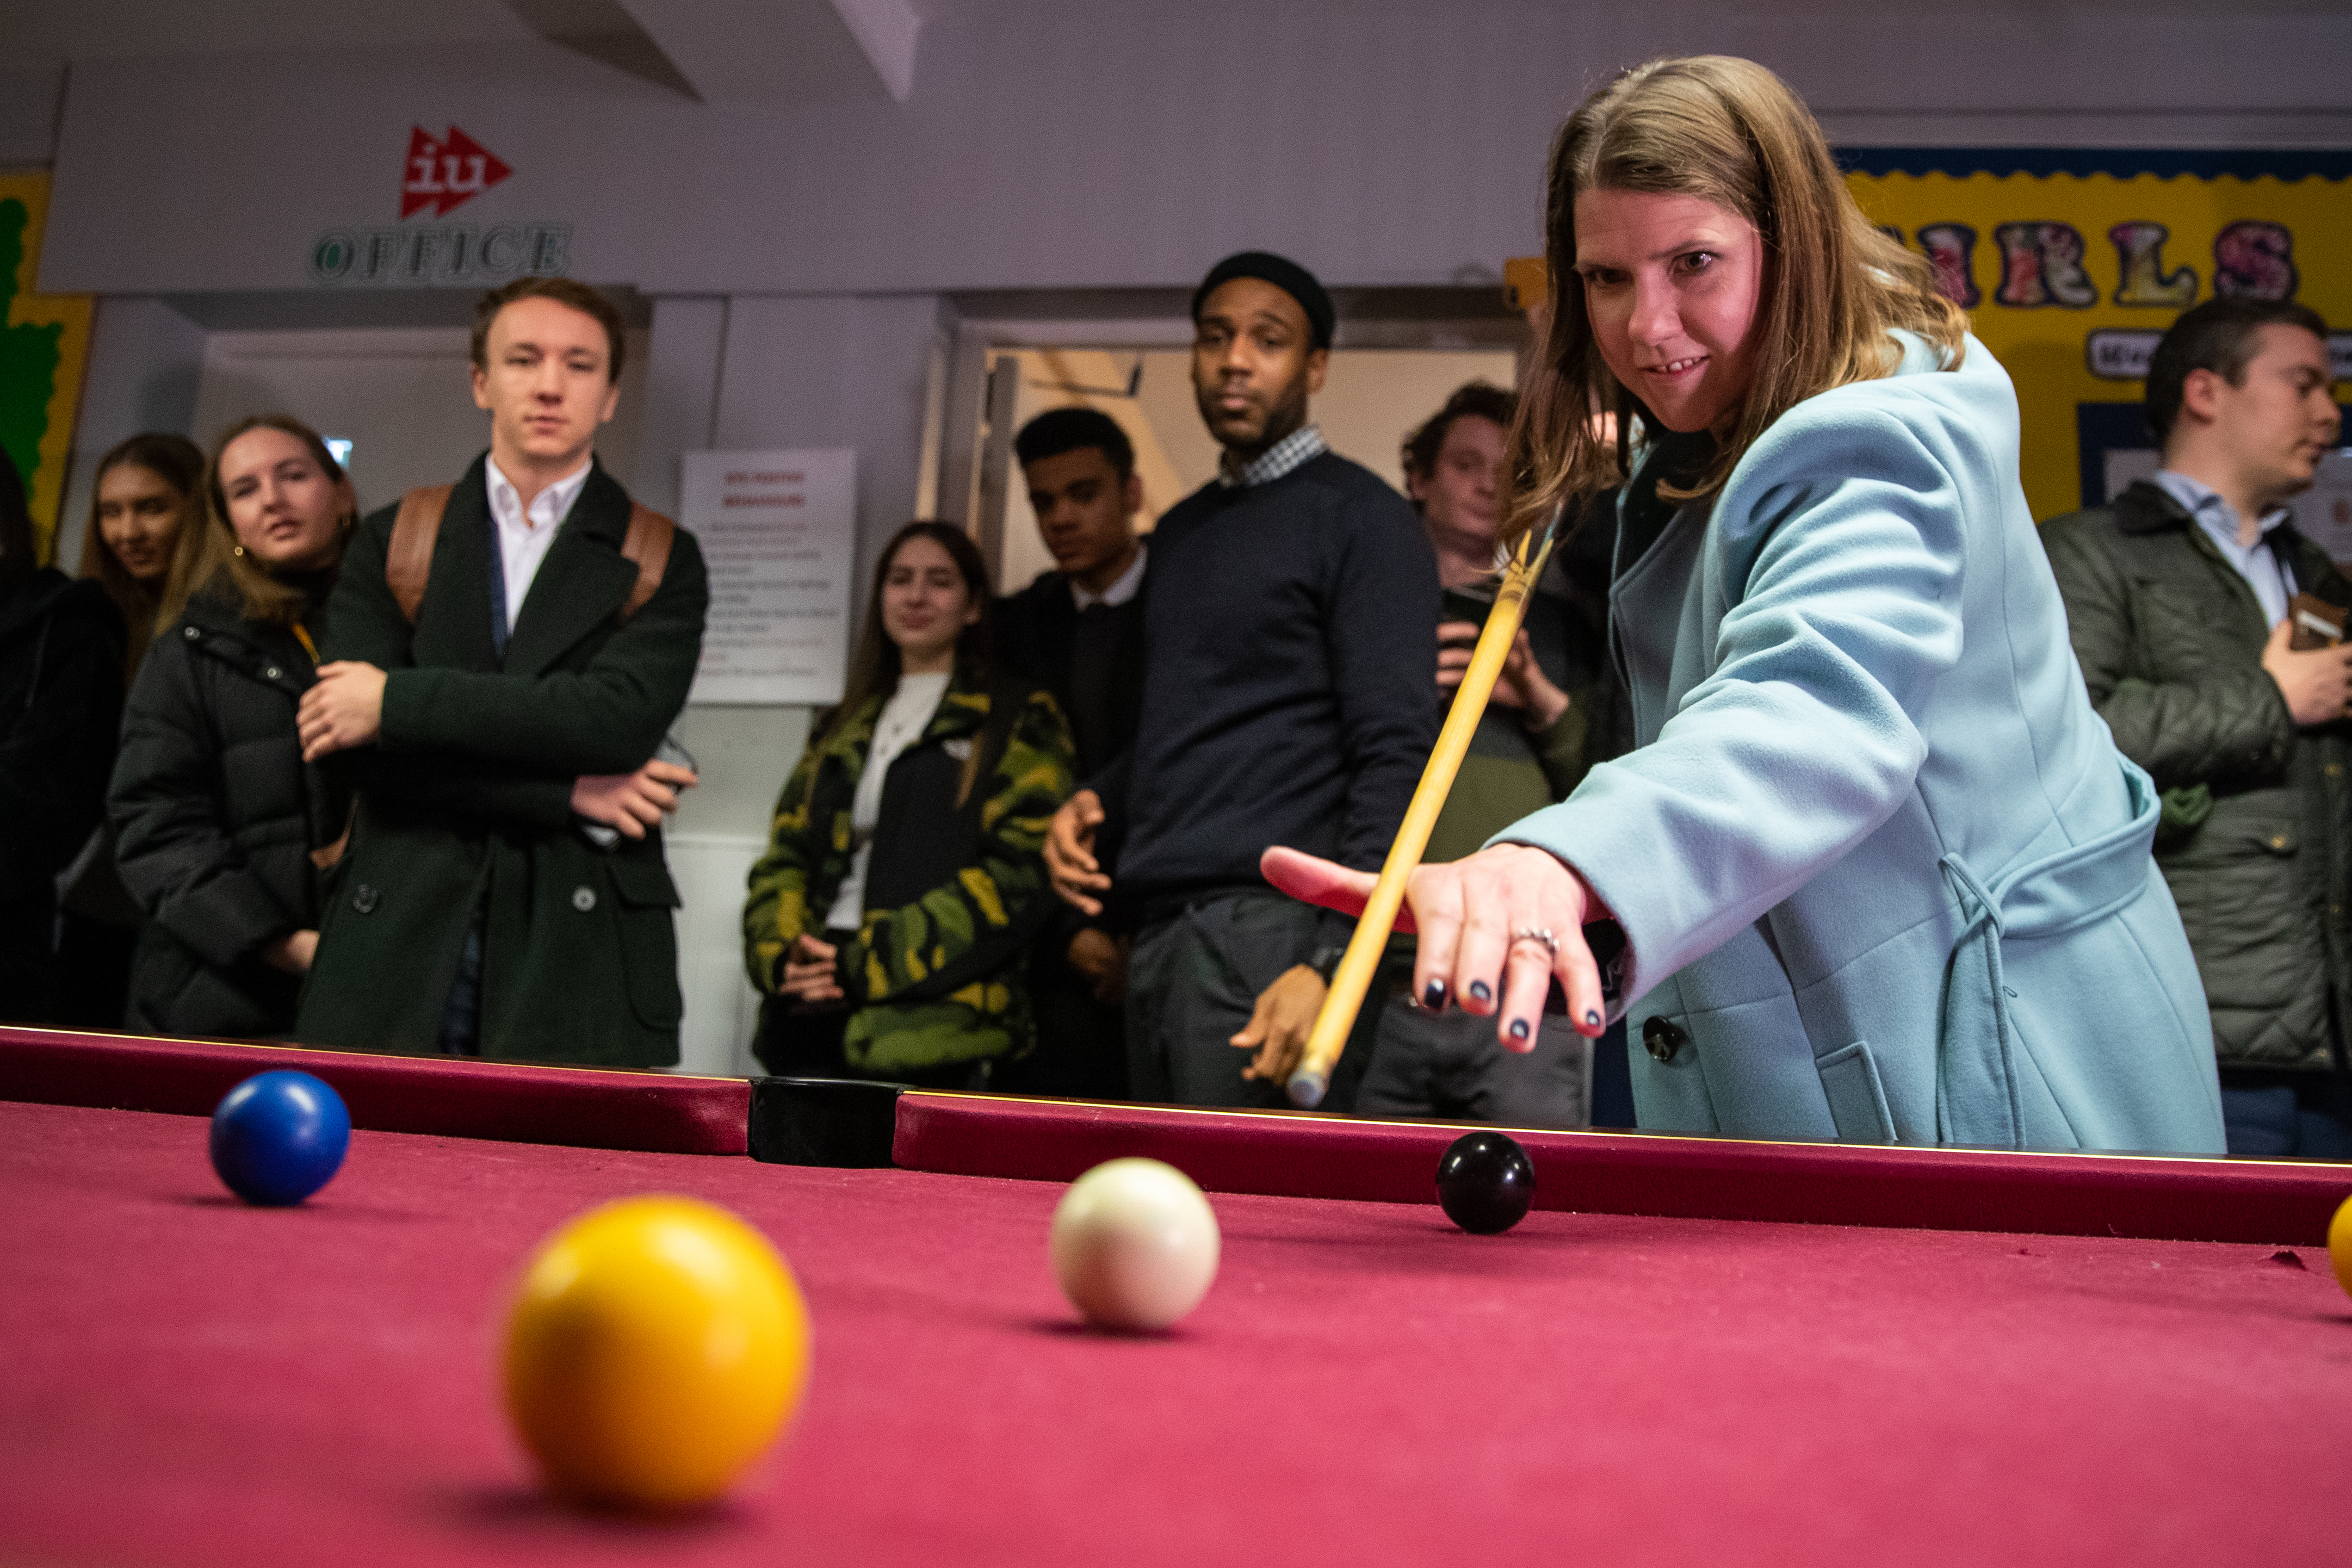 Liberal Democrat leader Jo Swinson plays pool during a visit to Knights Youth Centre in London, while on the General Election campaign trail.